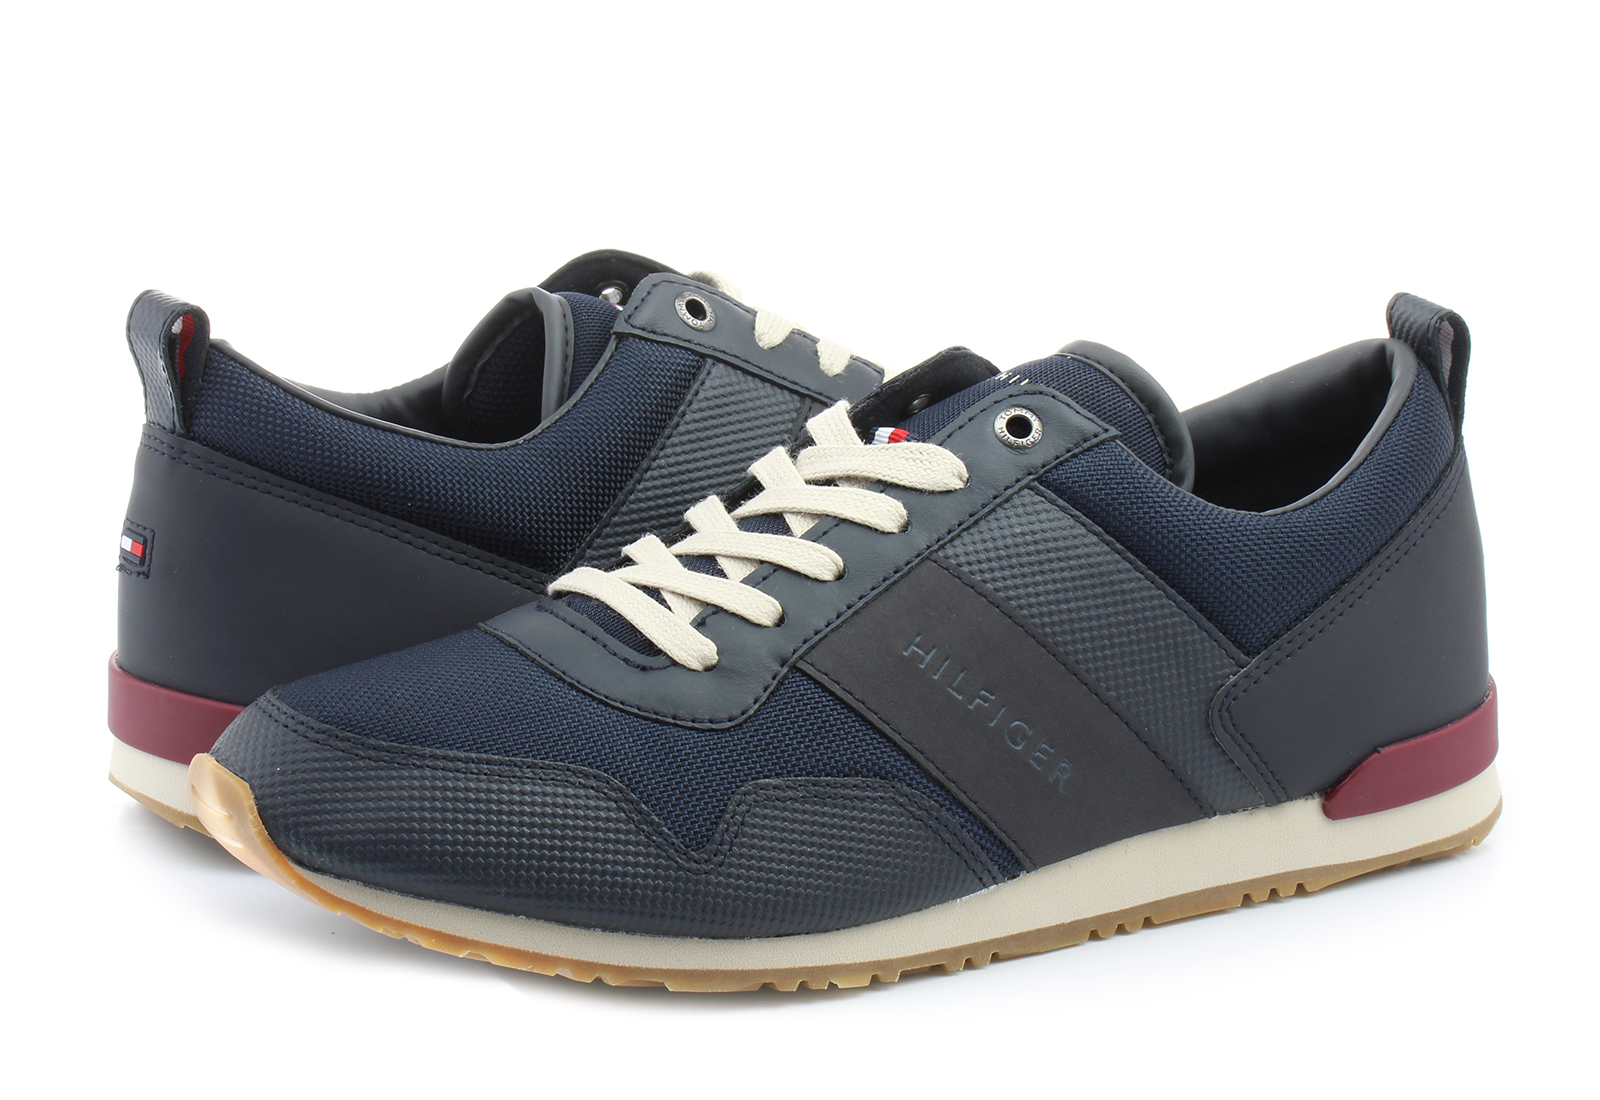 3f3228f2c0 Tommy Hilfiger Cipő - Maxwell 11 - 18S-1477-403 - Office Shoes ...